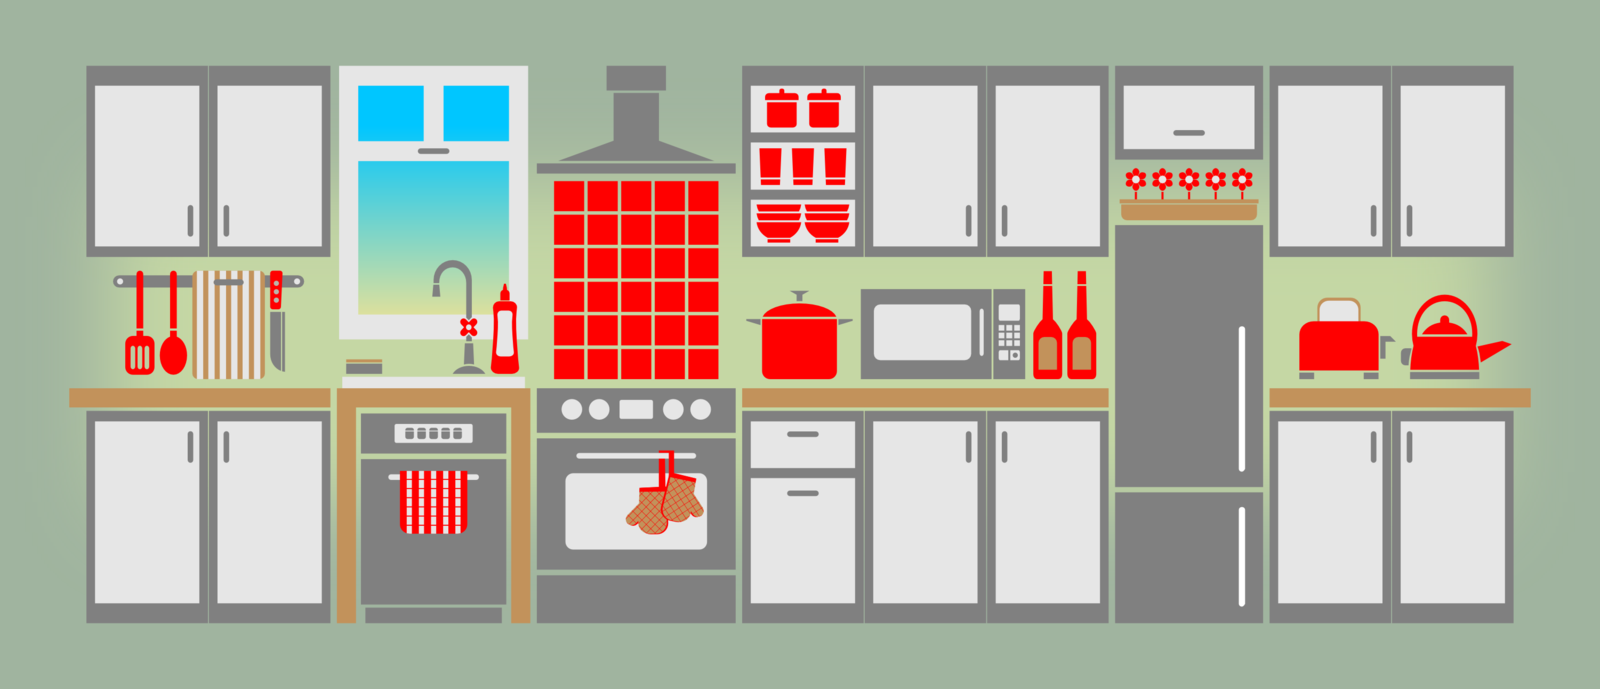 Free Kitchen Cliparts, Download Free Clip Art, Free Clip Art.